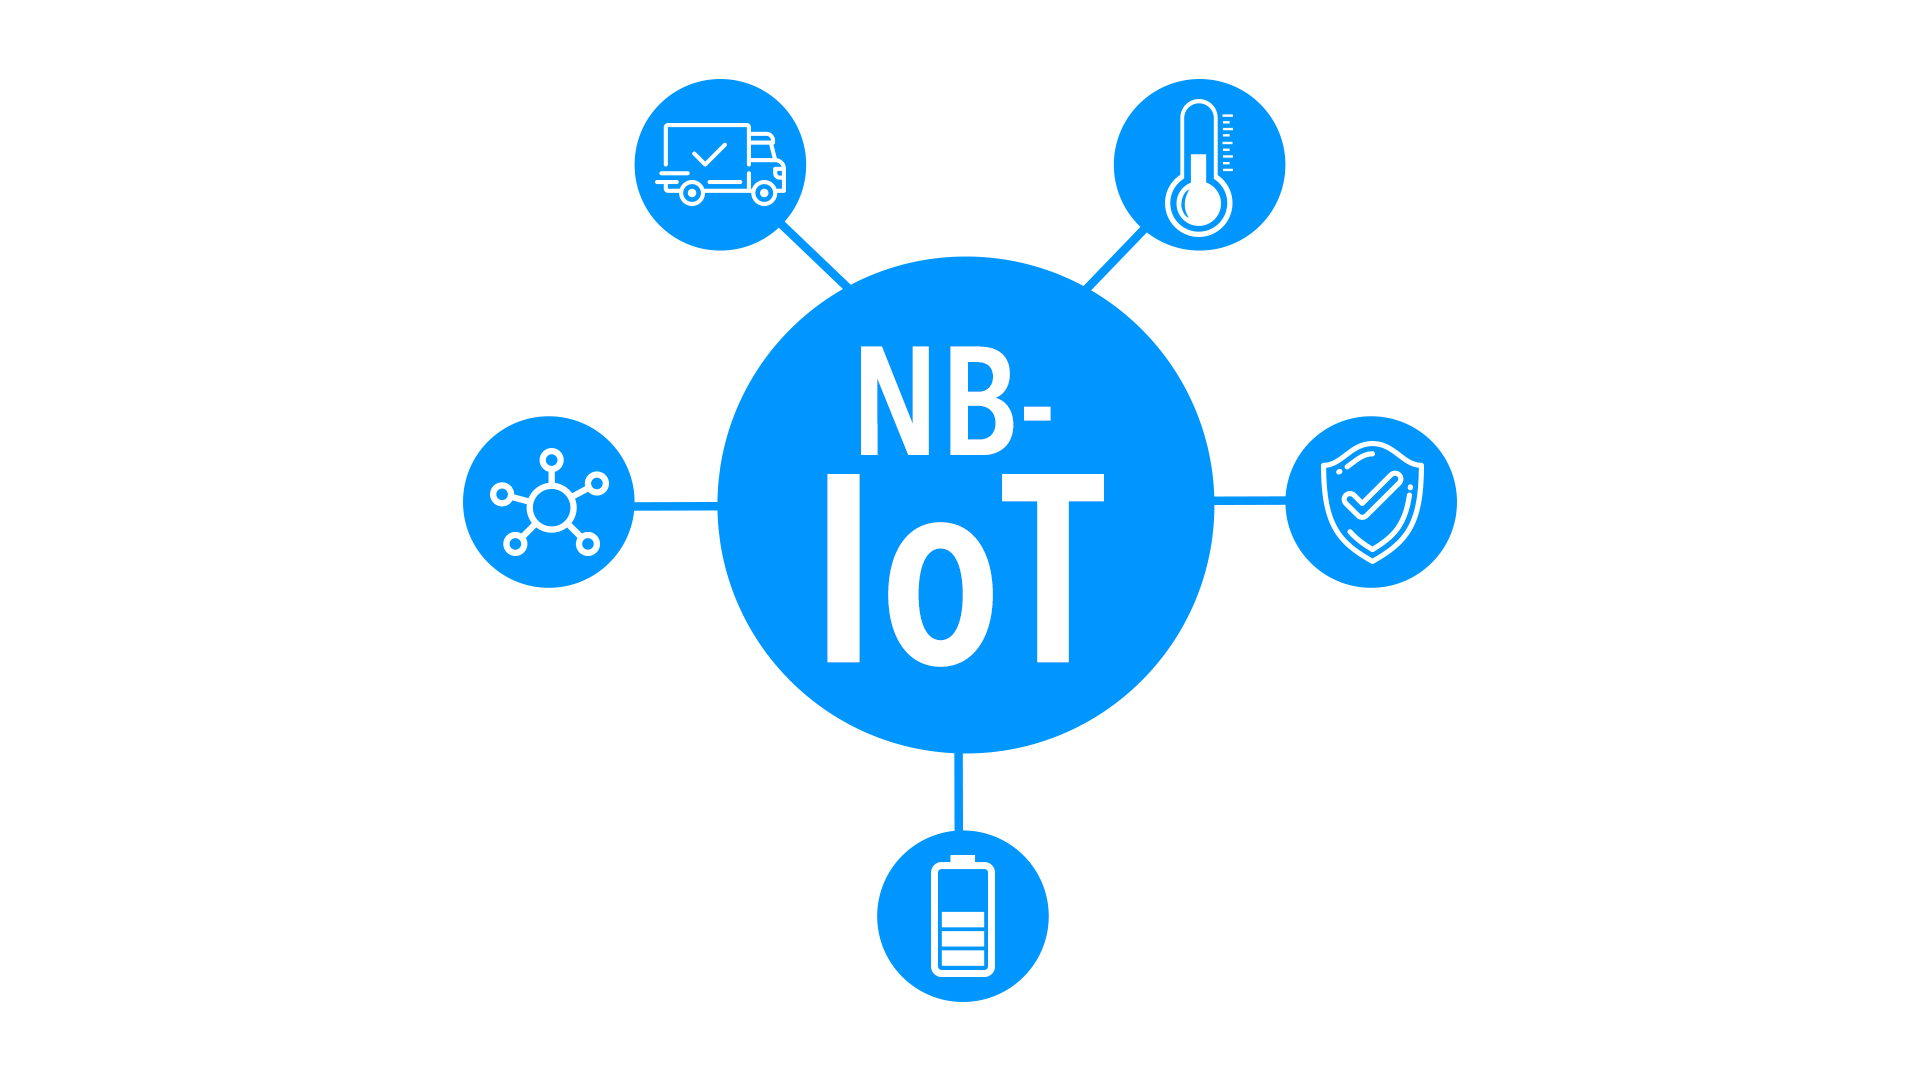 NB-IoT seminar slides and BC66 datasheets are online